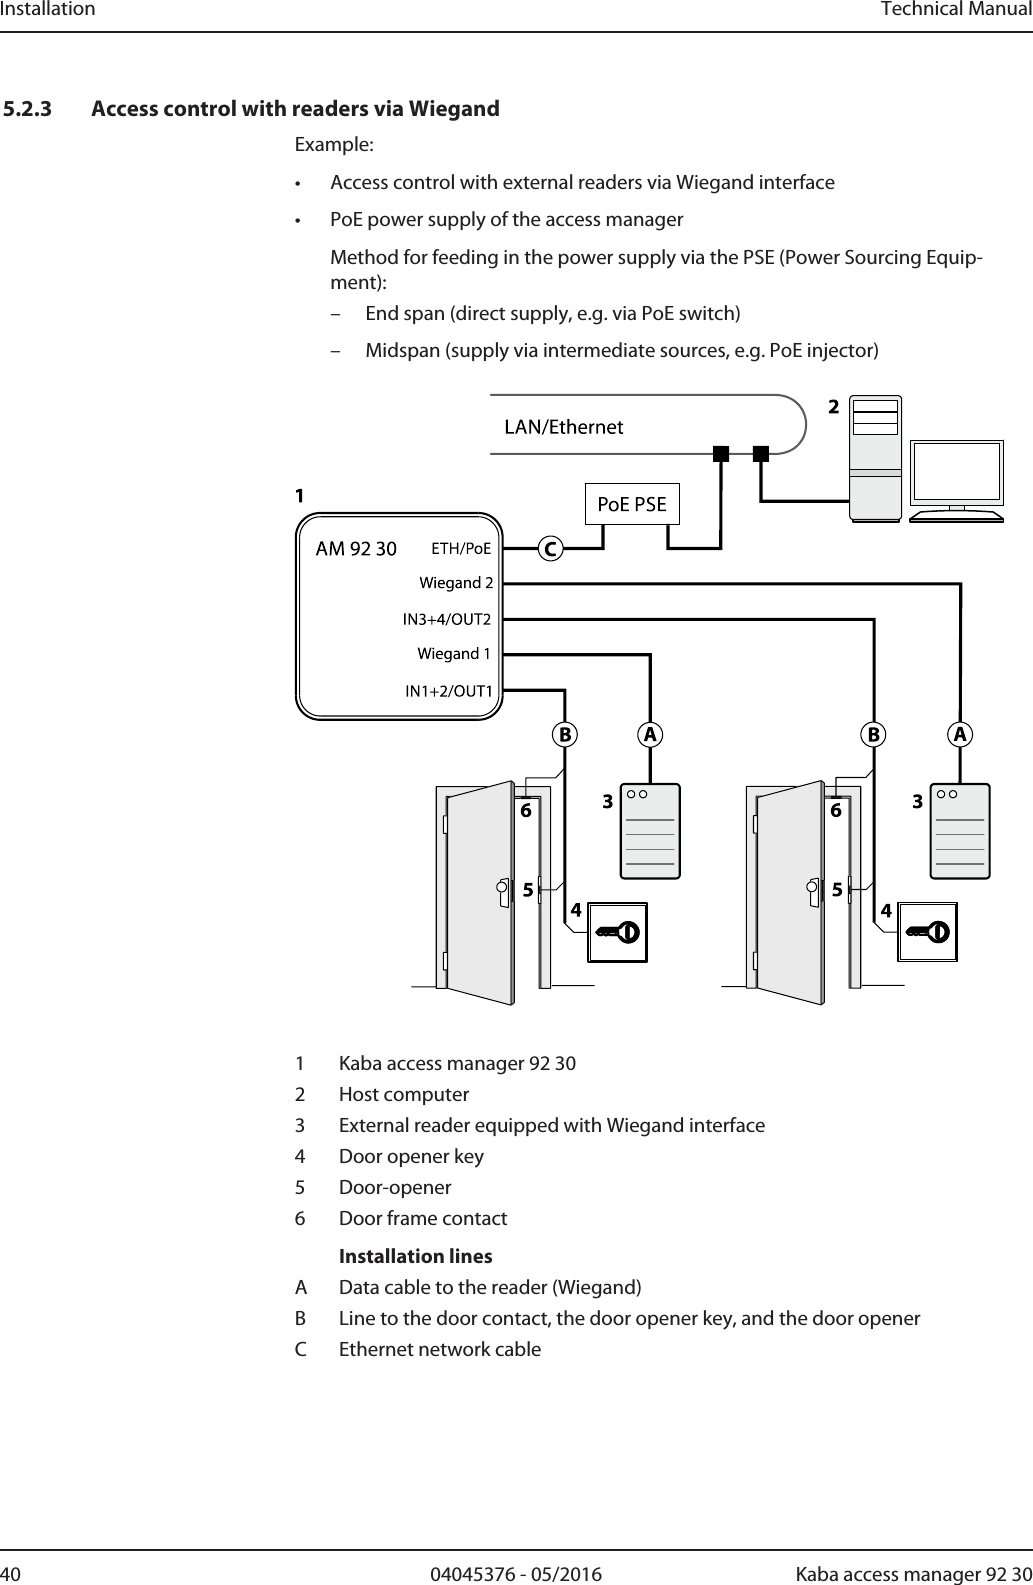 Wiegand Reader Wiring Diagram Download